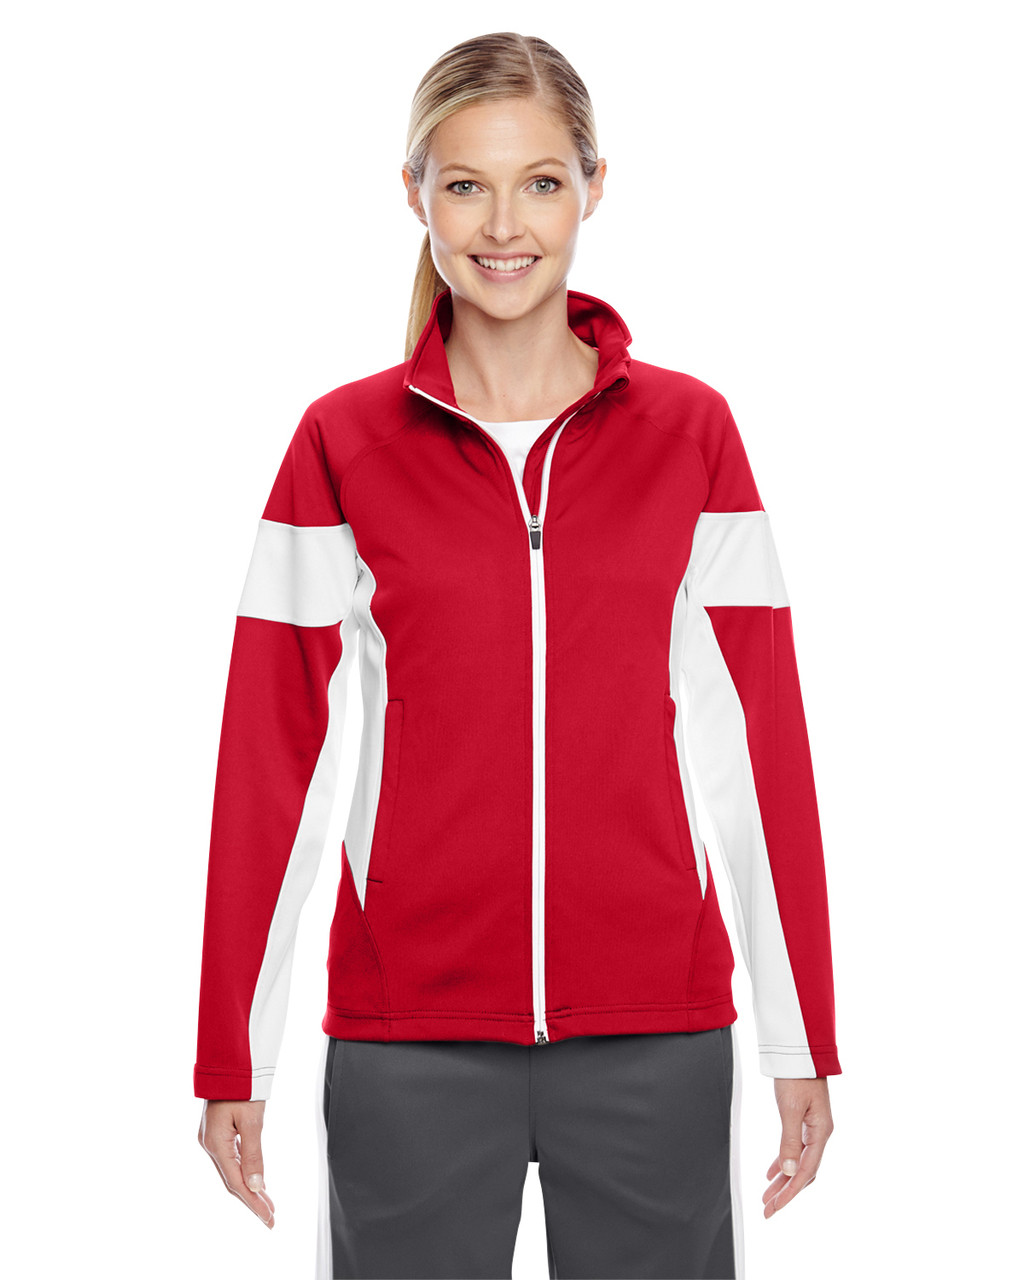 Red/White - TT34W Team 365 Ladies' Elite Performance Full-Zip Jacket